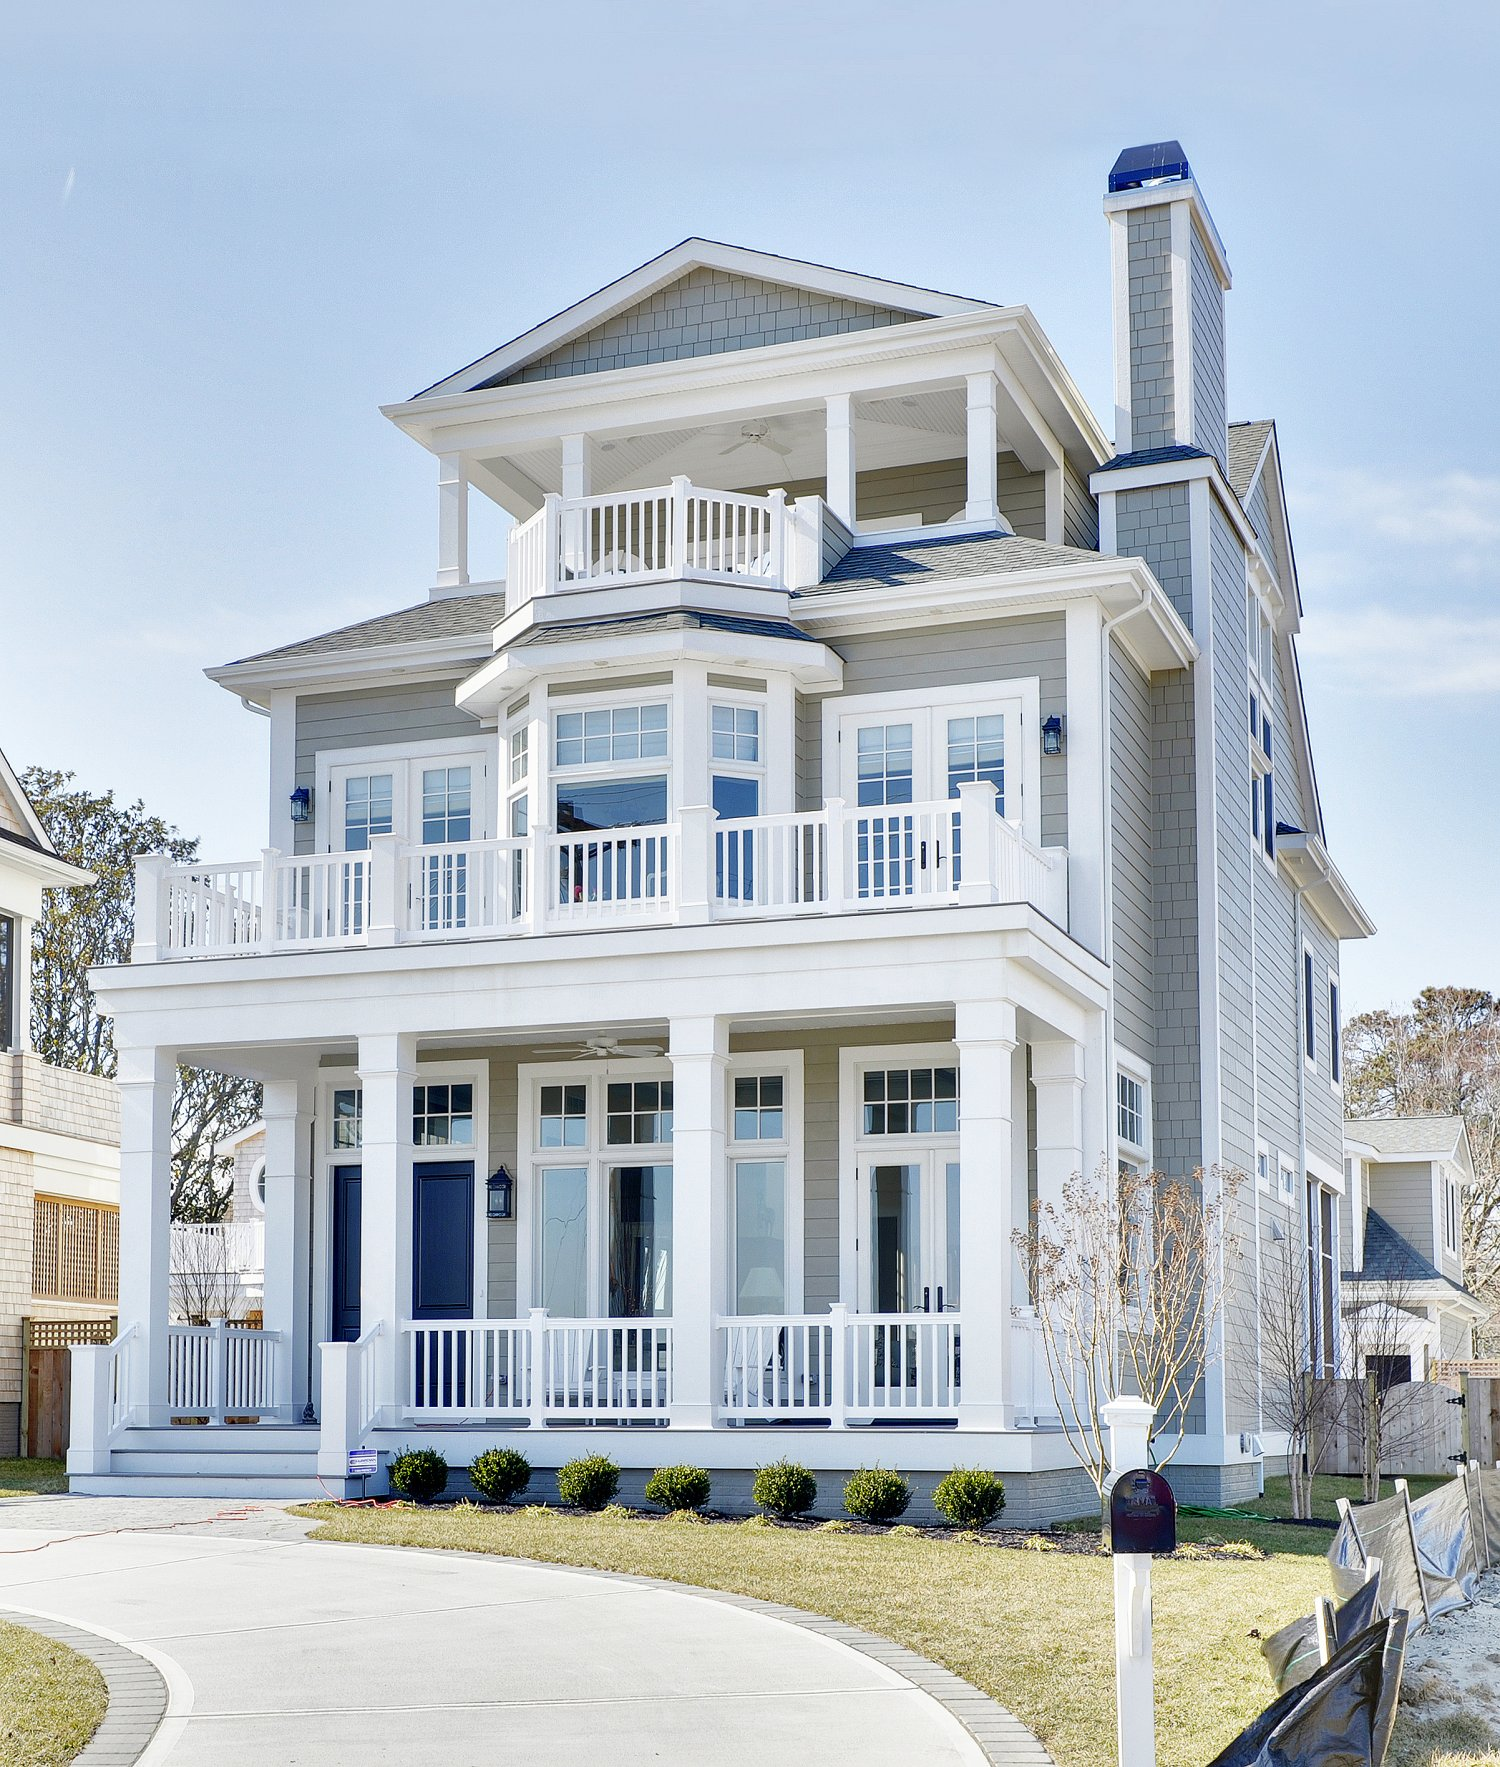 Silver lake photo gallery of custom delaware new homes - Coastal home exterior color schemes ...